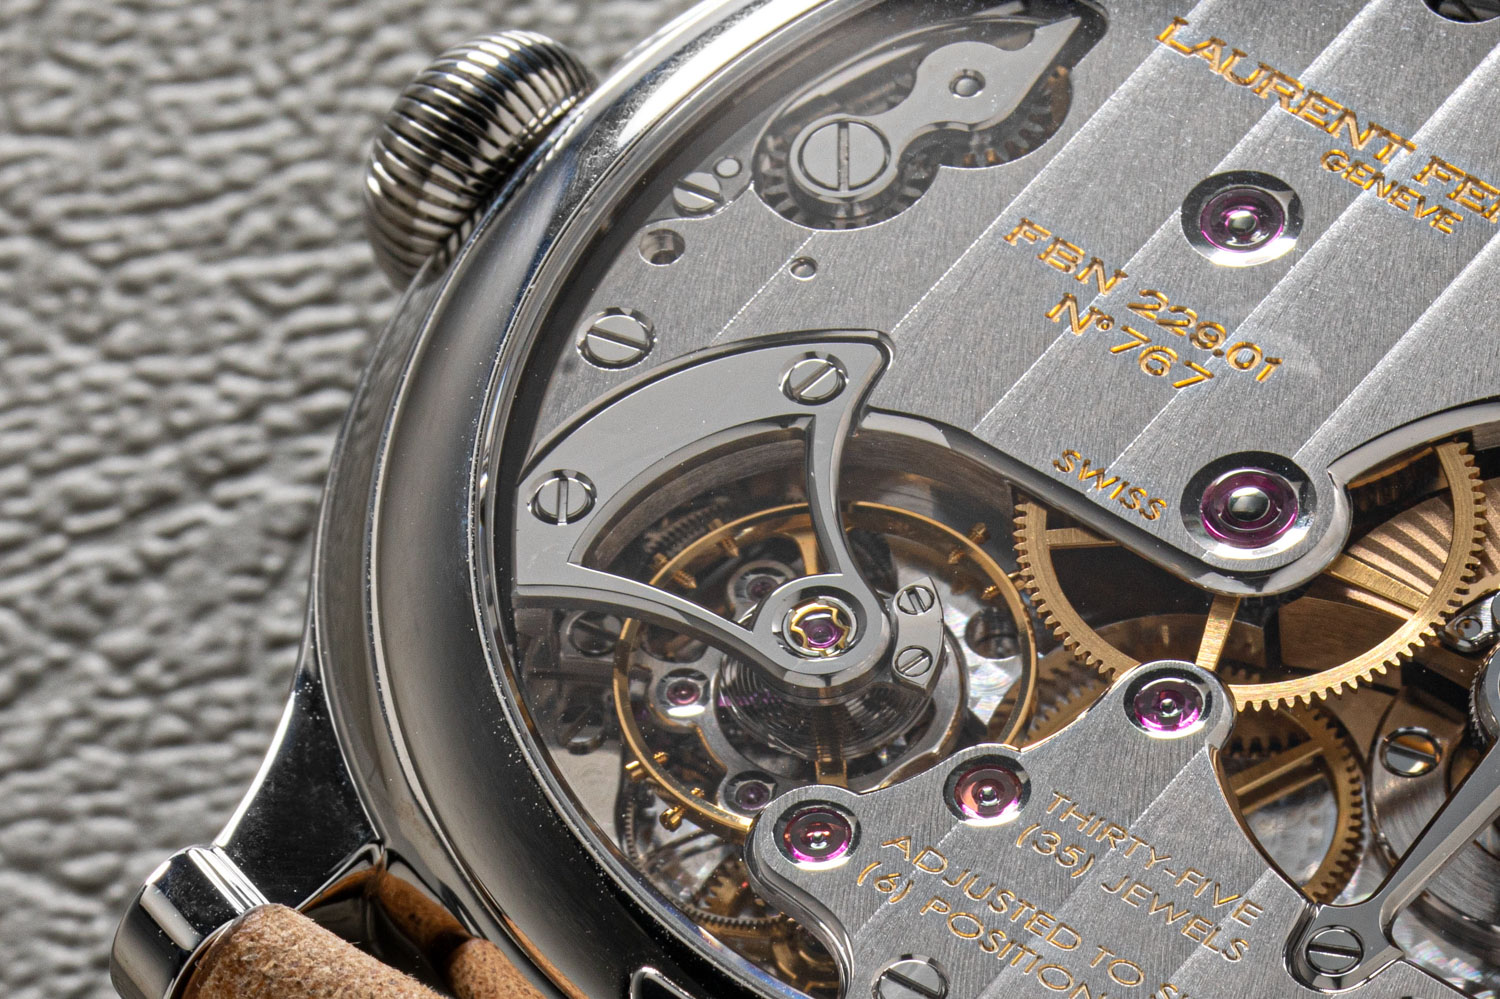 Recessed within the depths of the Micro-Rotor's movement is Ferrier's take on the legendary Natural Escapement, this exclusive double direct-impulse escapement in silicon, directly on the balance, has been inspired by the father of modern horology, Abraham-Louis Breguet; the modern construction, associated with the use of cutting-edge materials, maximizes the restitution of energy (©Revolution)